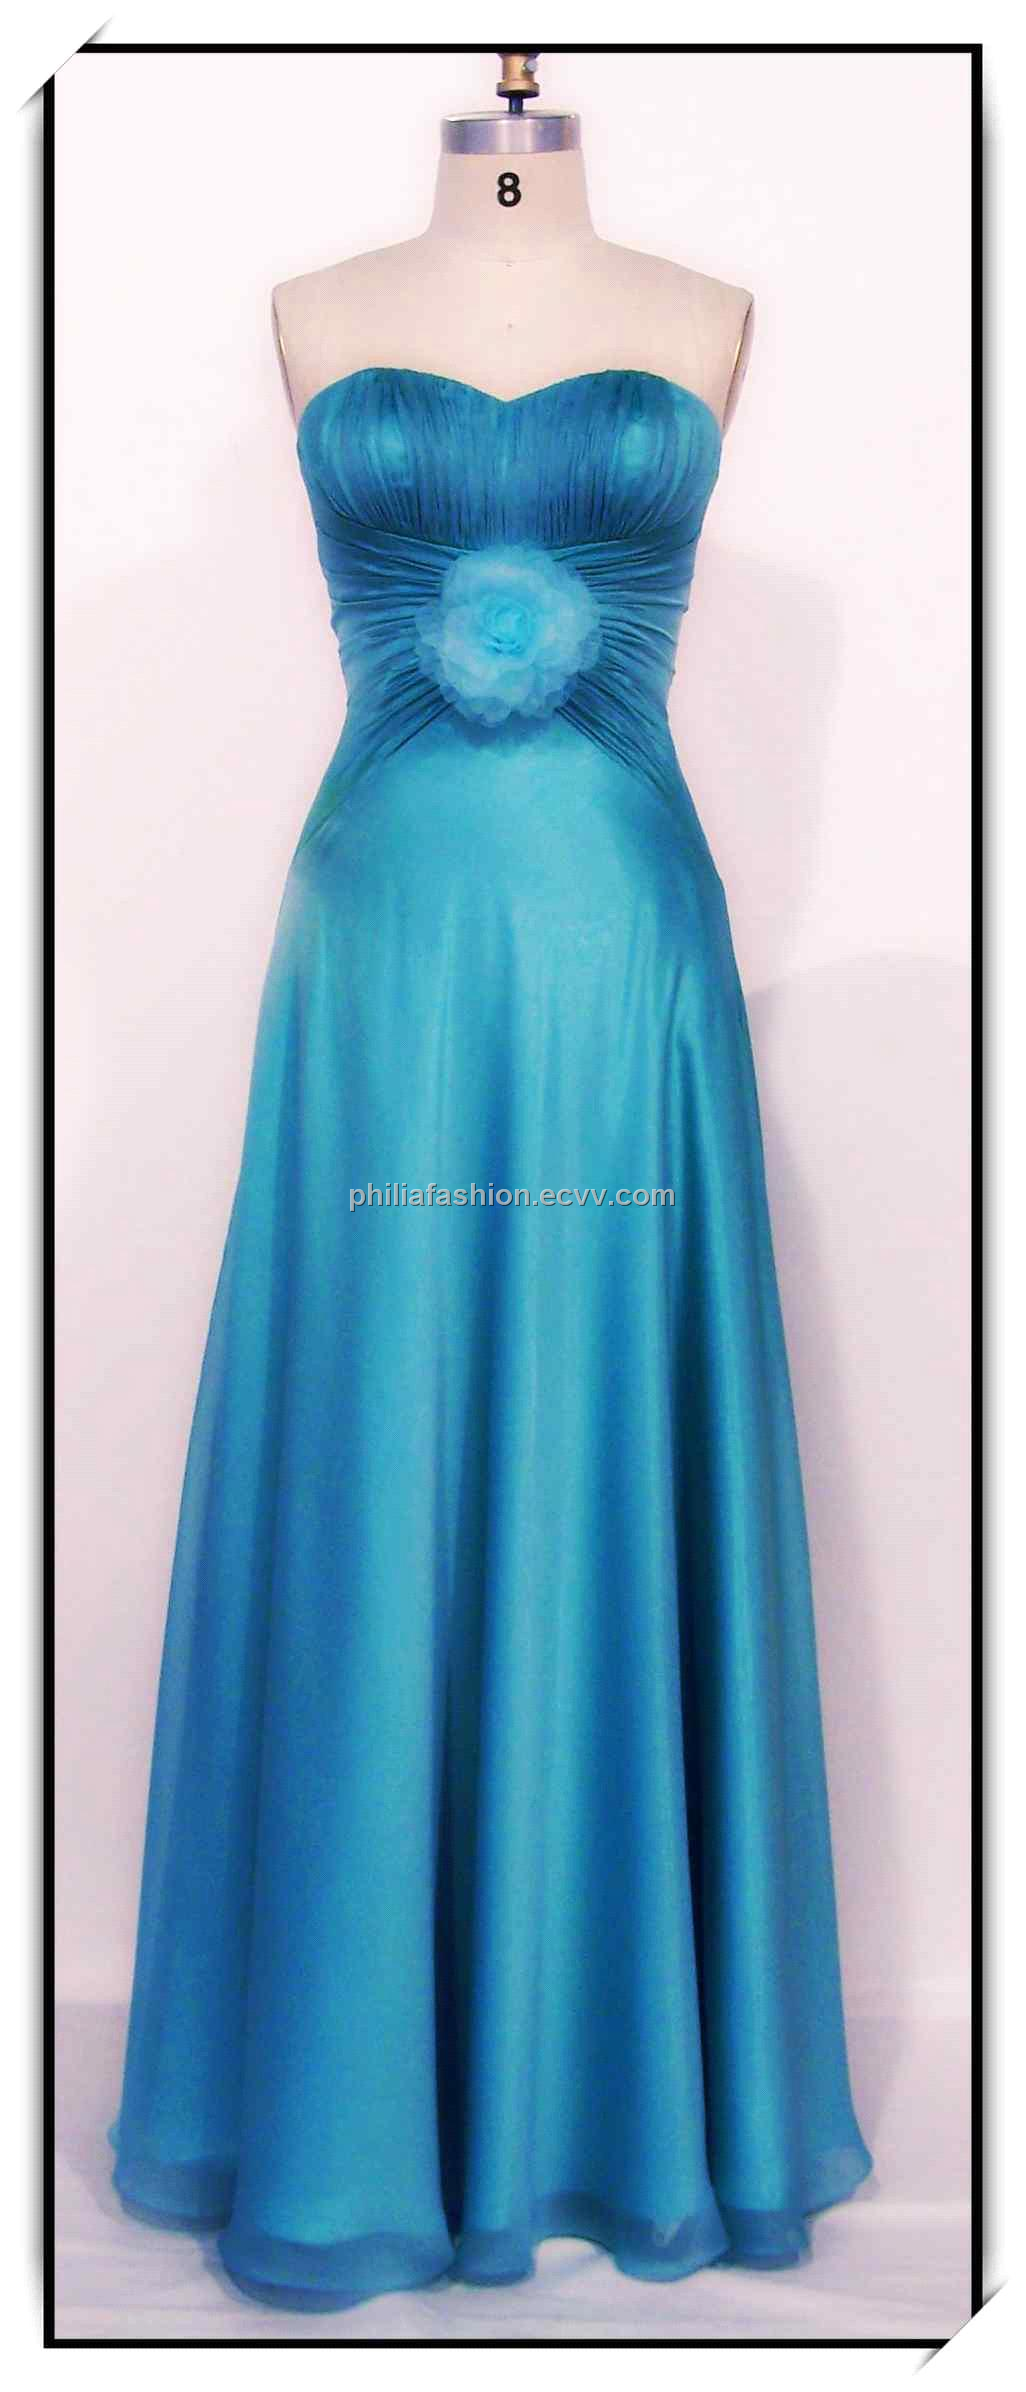 Womens Formal Wear, Cheap Prom Dresses, Petite Prom Dresses Under $100